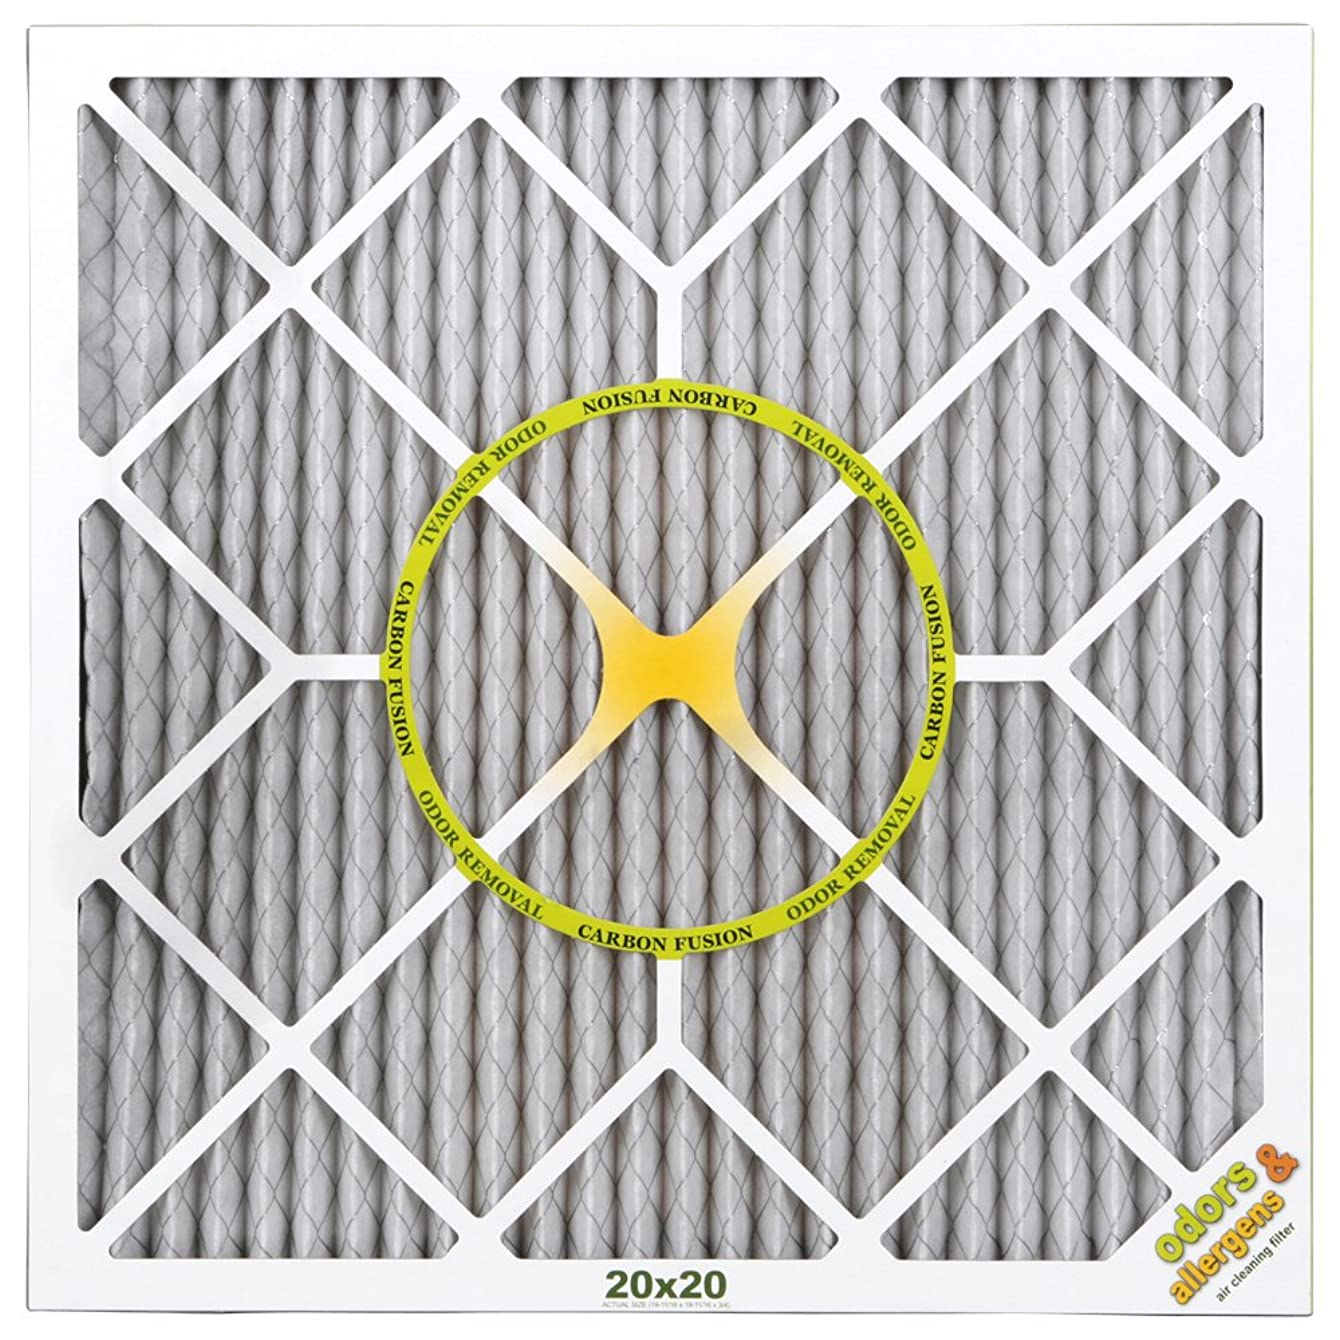 BestAir PF2020-1 Air Cleaning Furnace Filter, MERV 11, Carbon Infused to Neutralize Odor, For 1